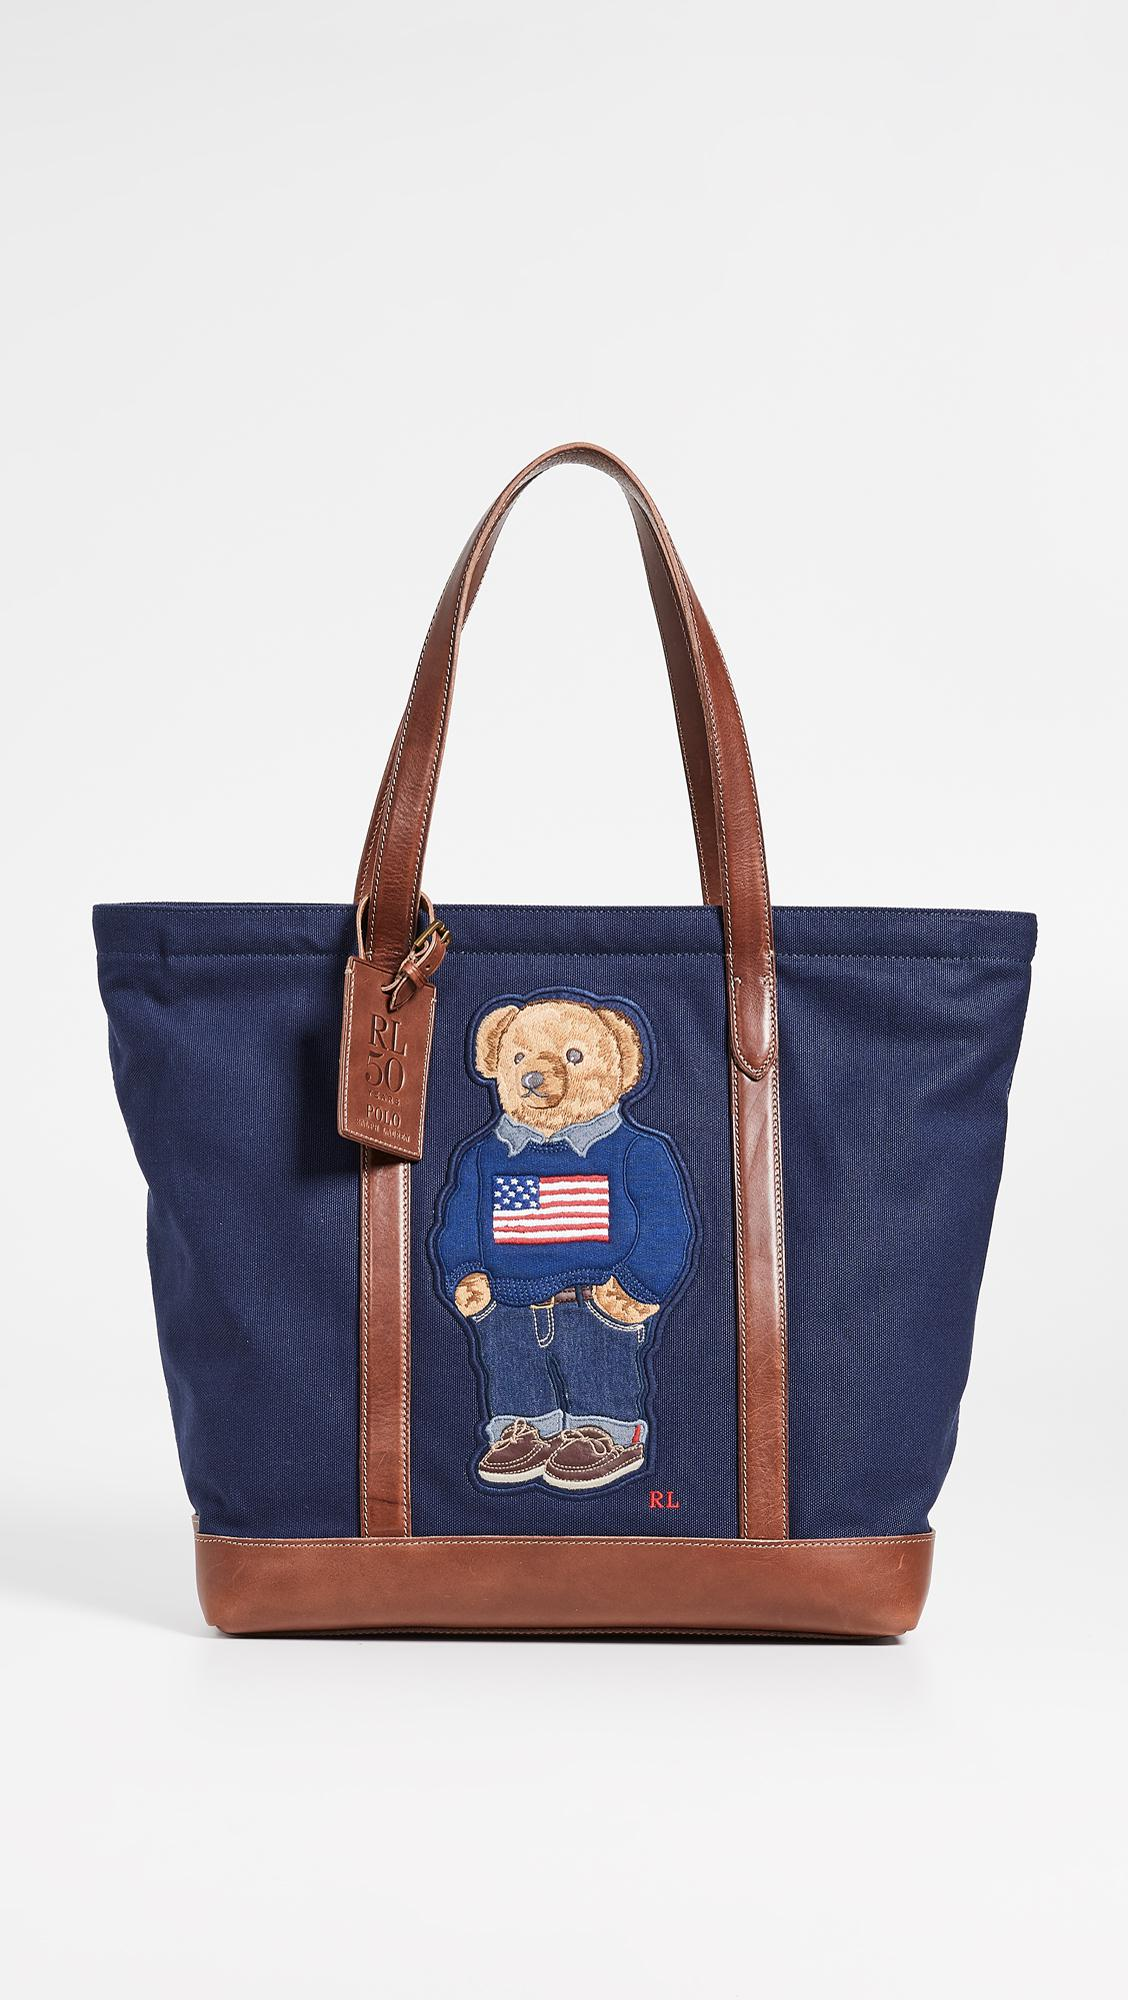 2b32afc520b2 Lyst - Polo Ralph Lauren 50th Anniversary Tote in Blue for Men